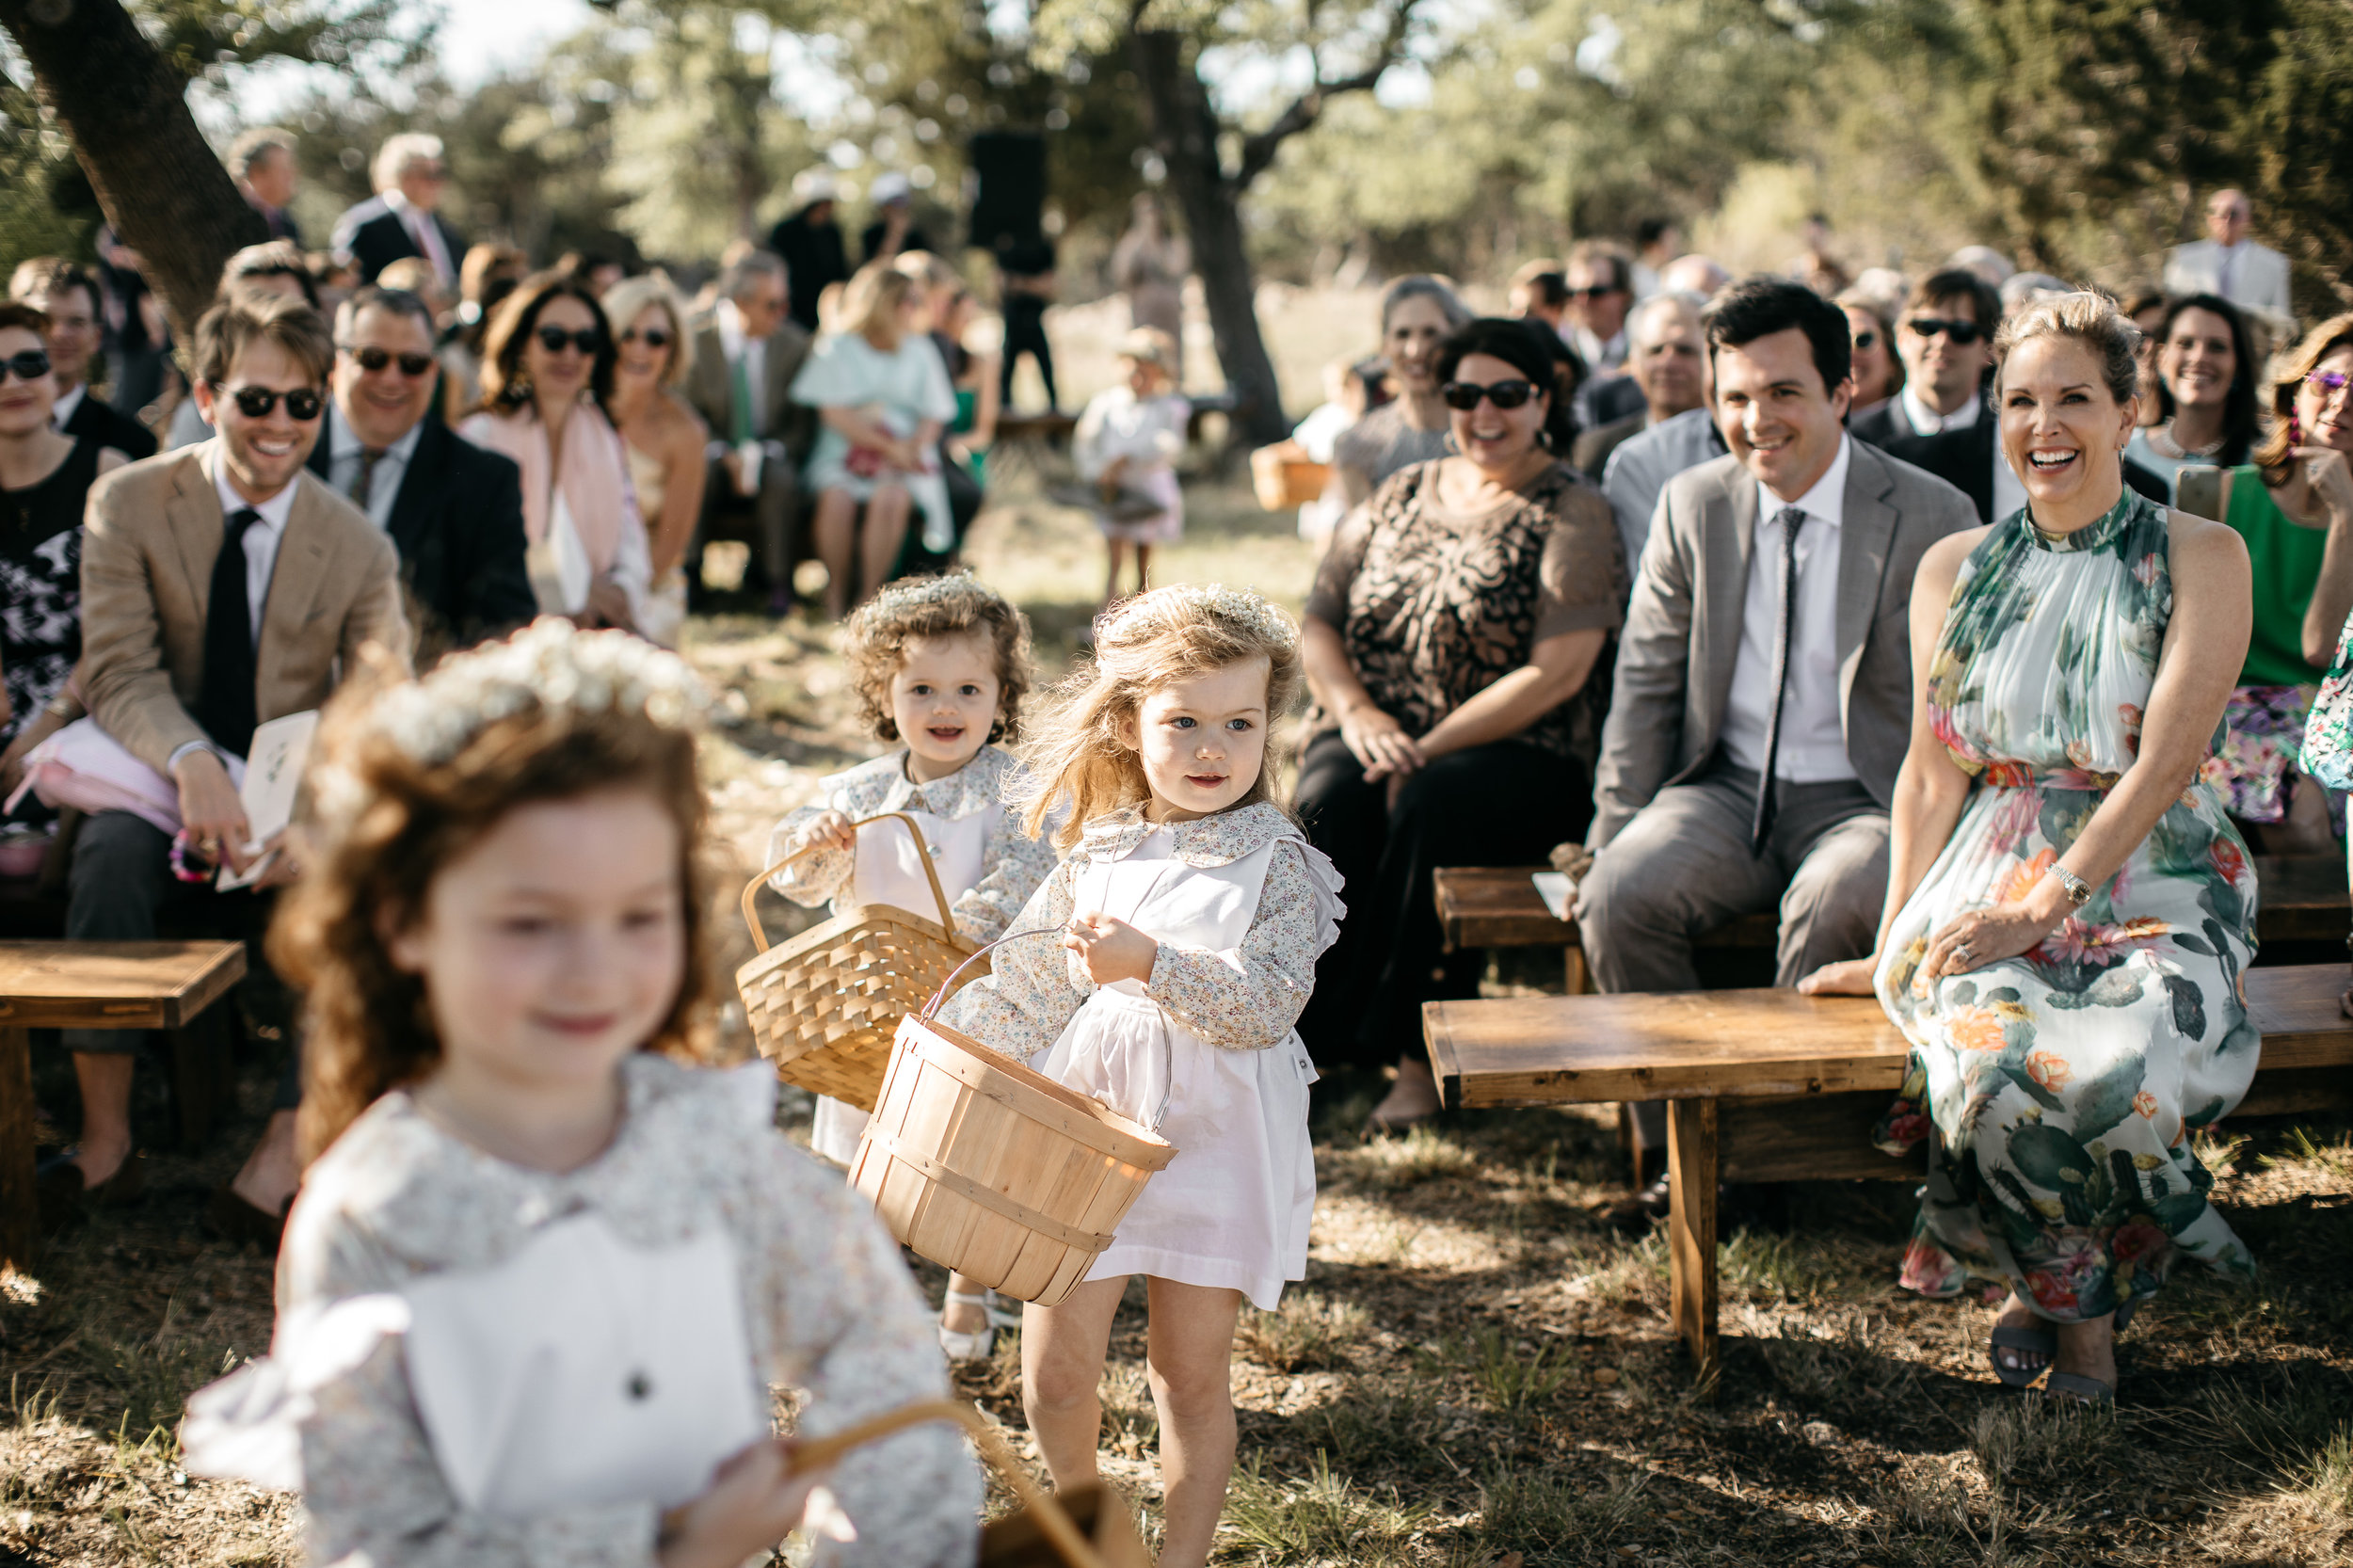 Kate_Luke_Texas_Wedding_JeanLaurentGaudy_331.jpg